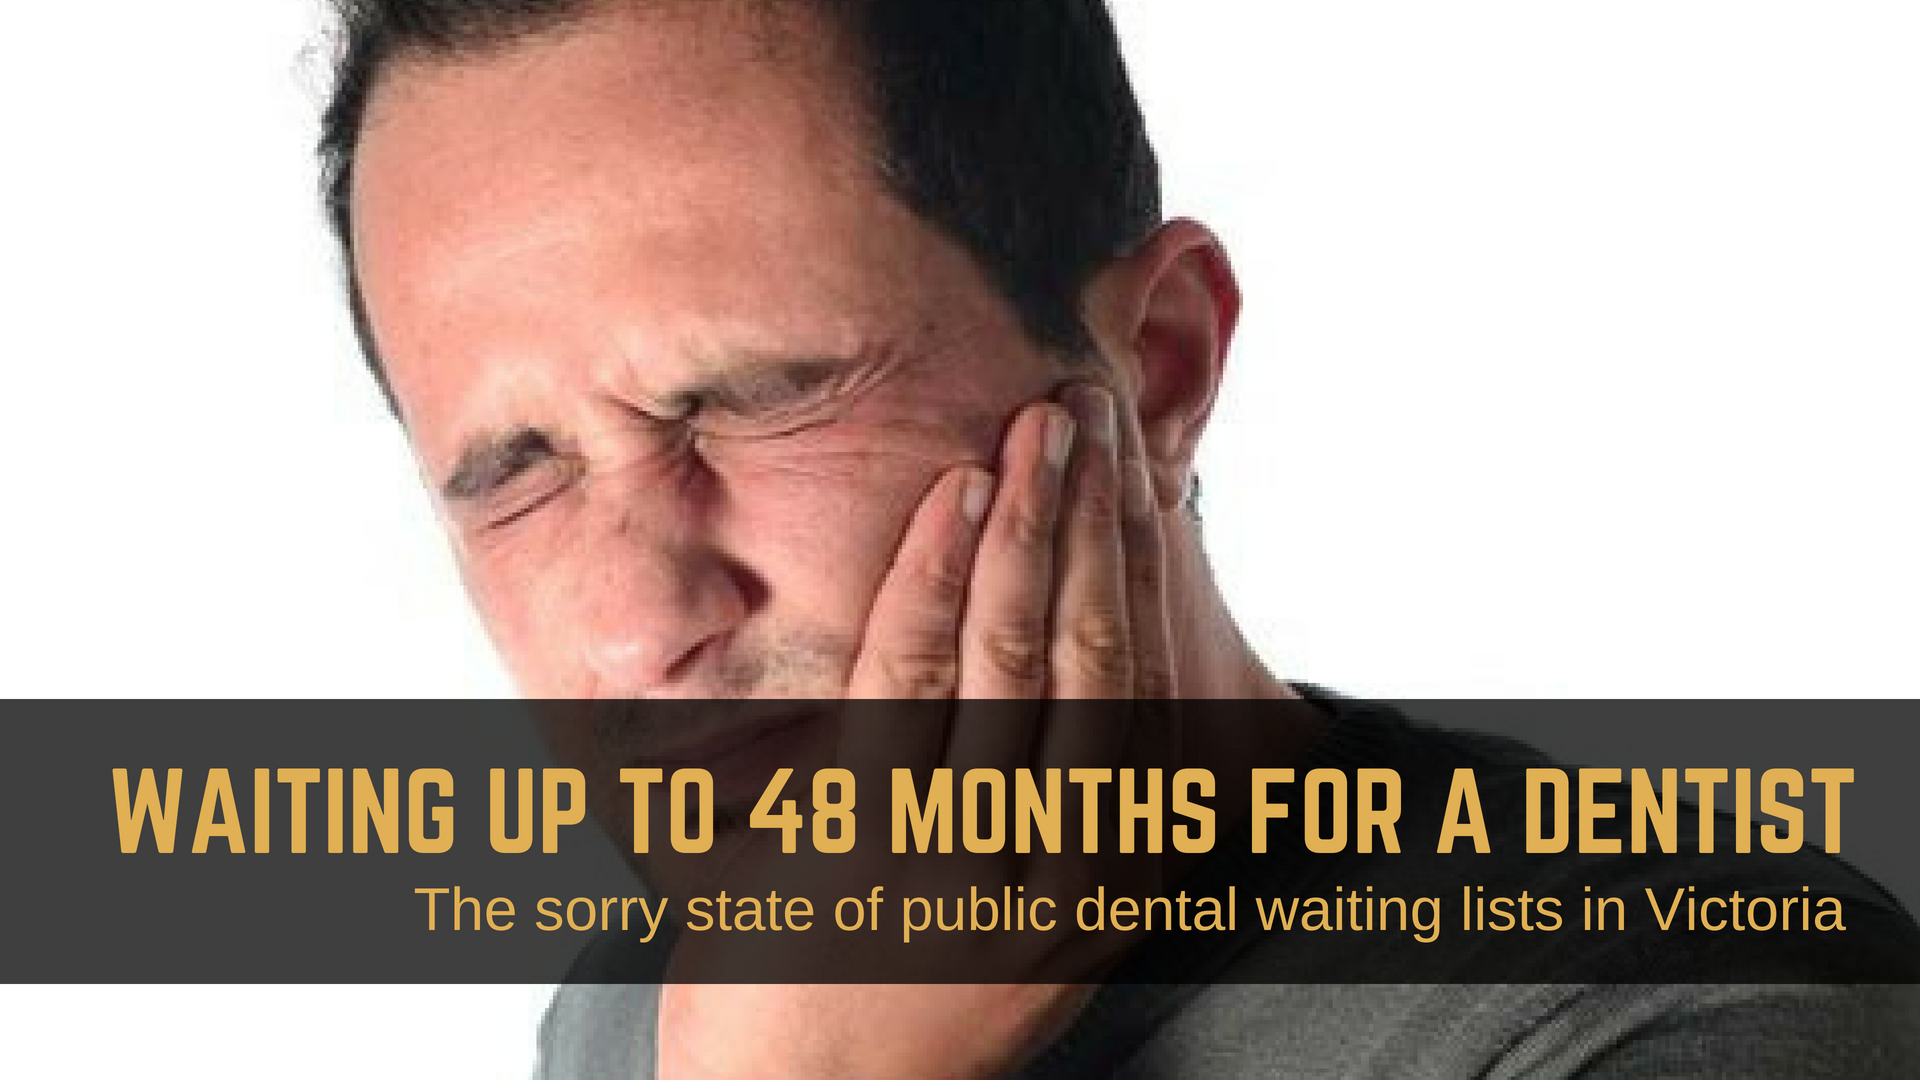 The sad state of dental waiting lists - vulnerable Victorian's waiting over 2 years for treatment